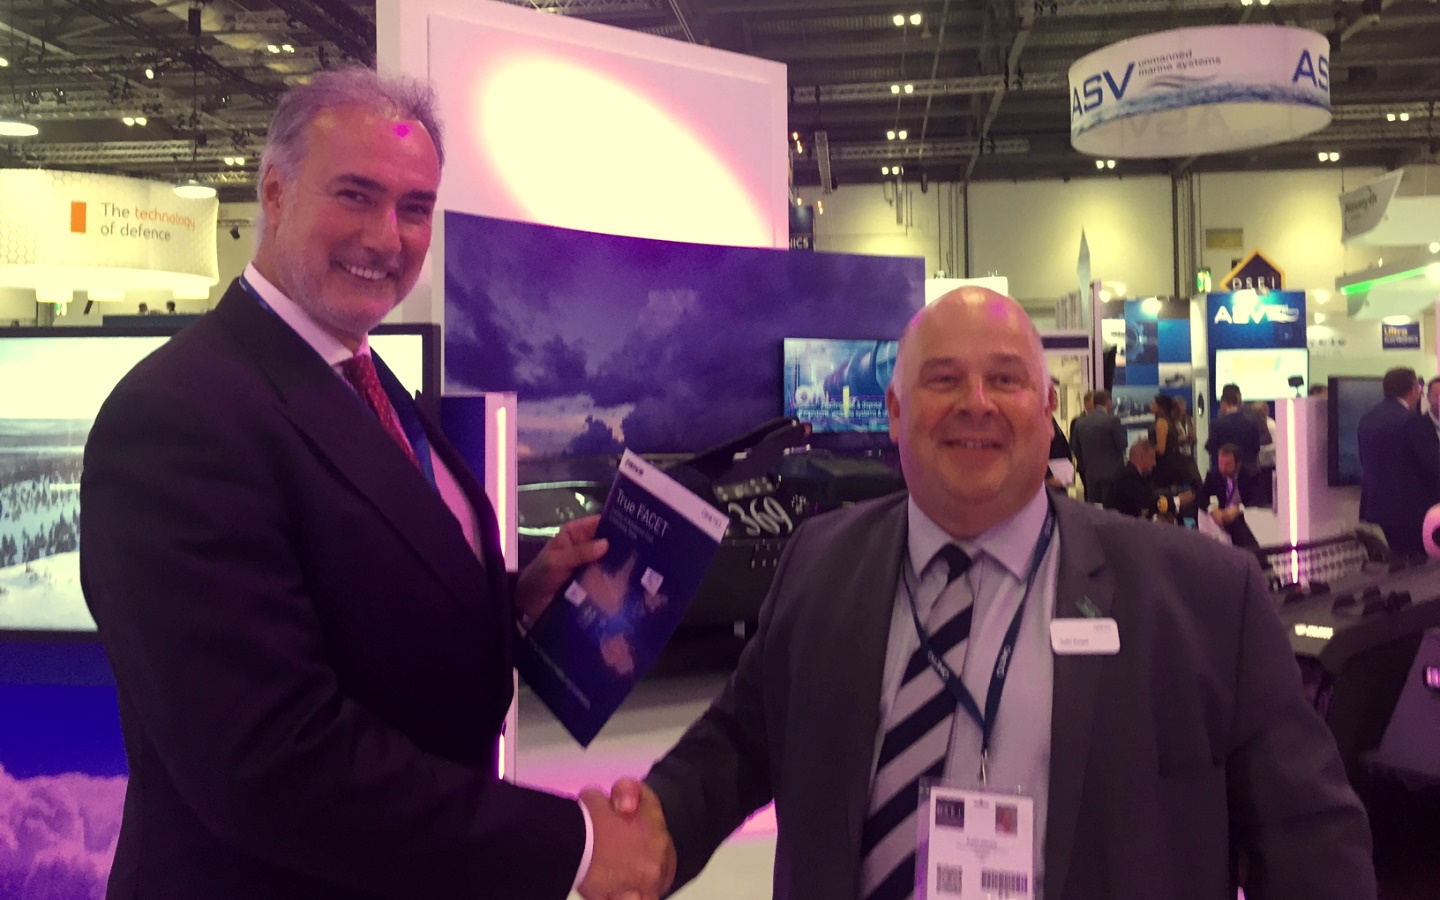 Cutting edge cost model software launched at DSEI